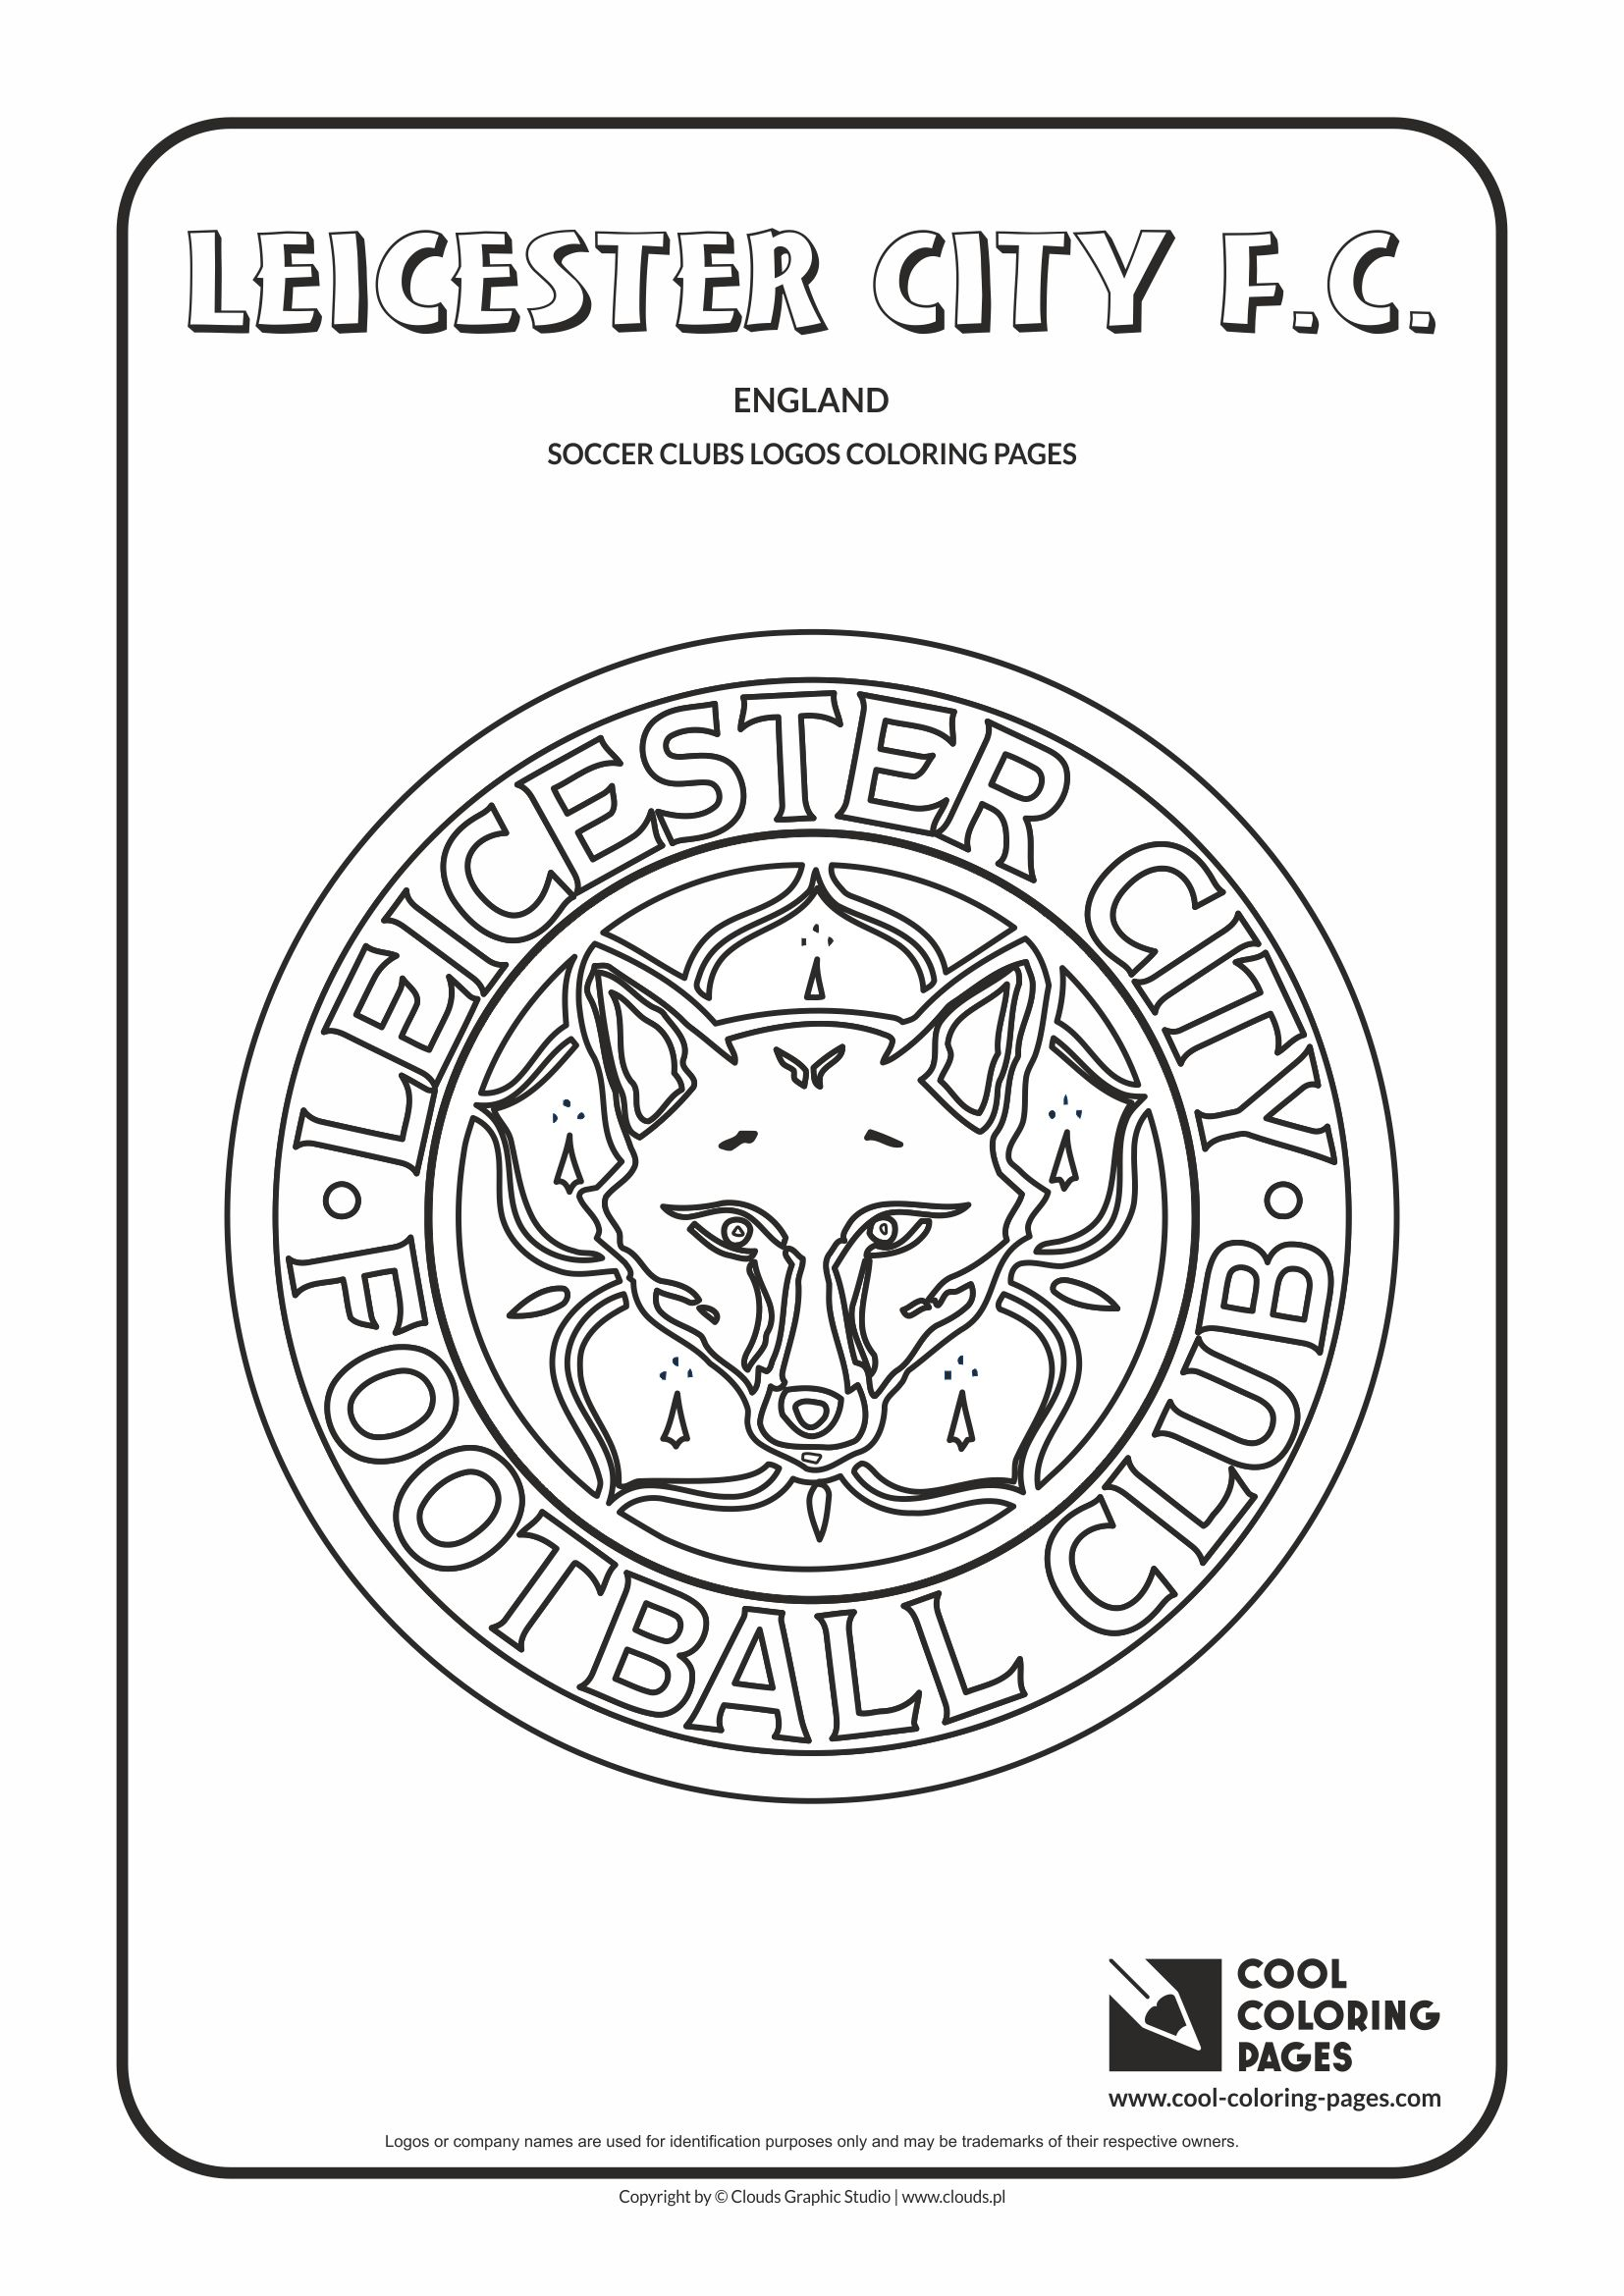 Leicester City F.C. logo coloring / Coloring page with Leicester City F.C. logo / Leicester City F.C. logo colouring page.